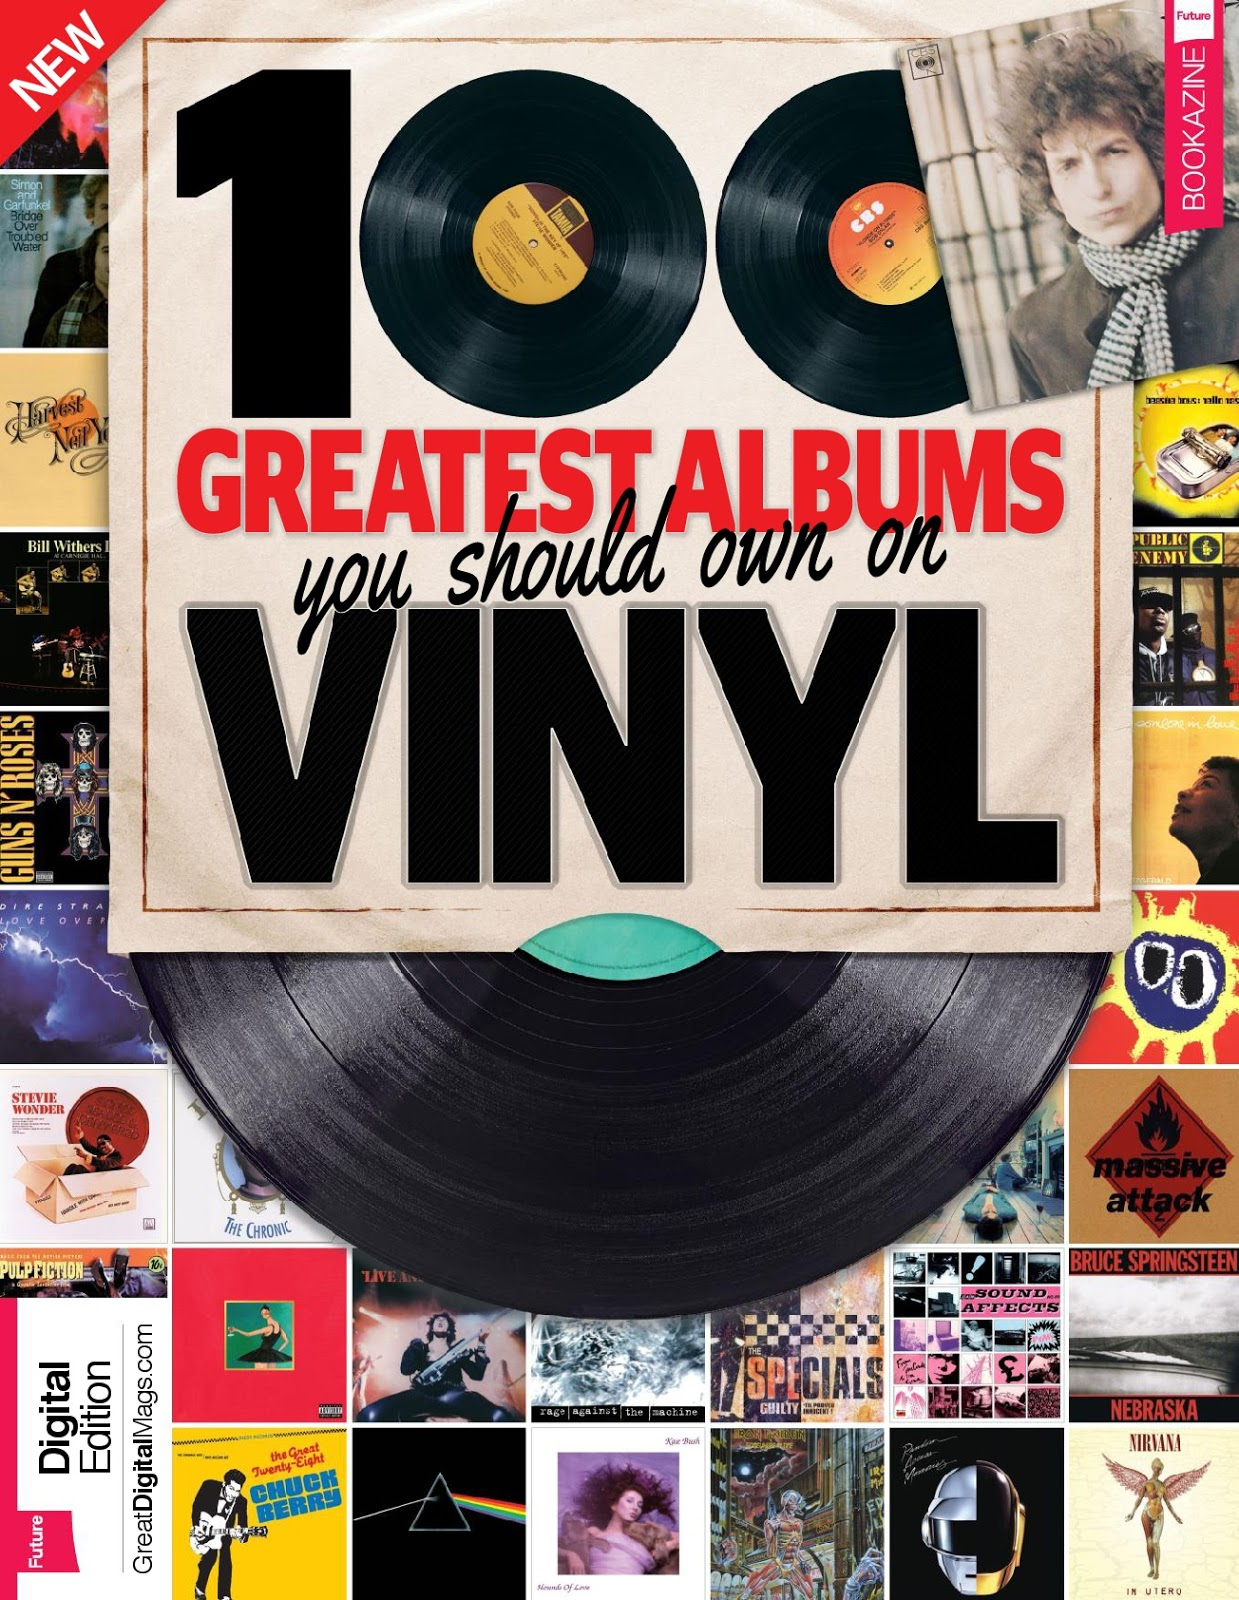 2017 100 Greatest Albums You Should Own On Vinyl   Kate Bush Clippings